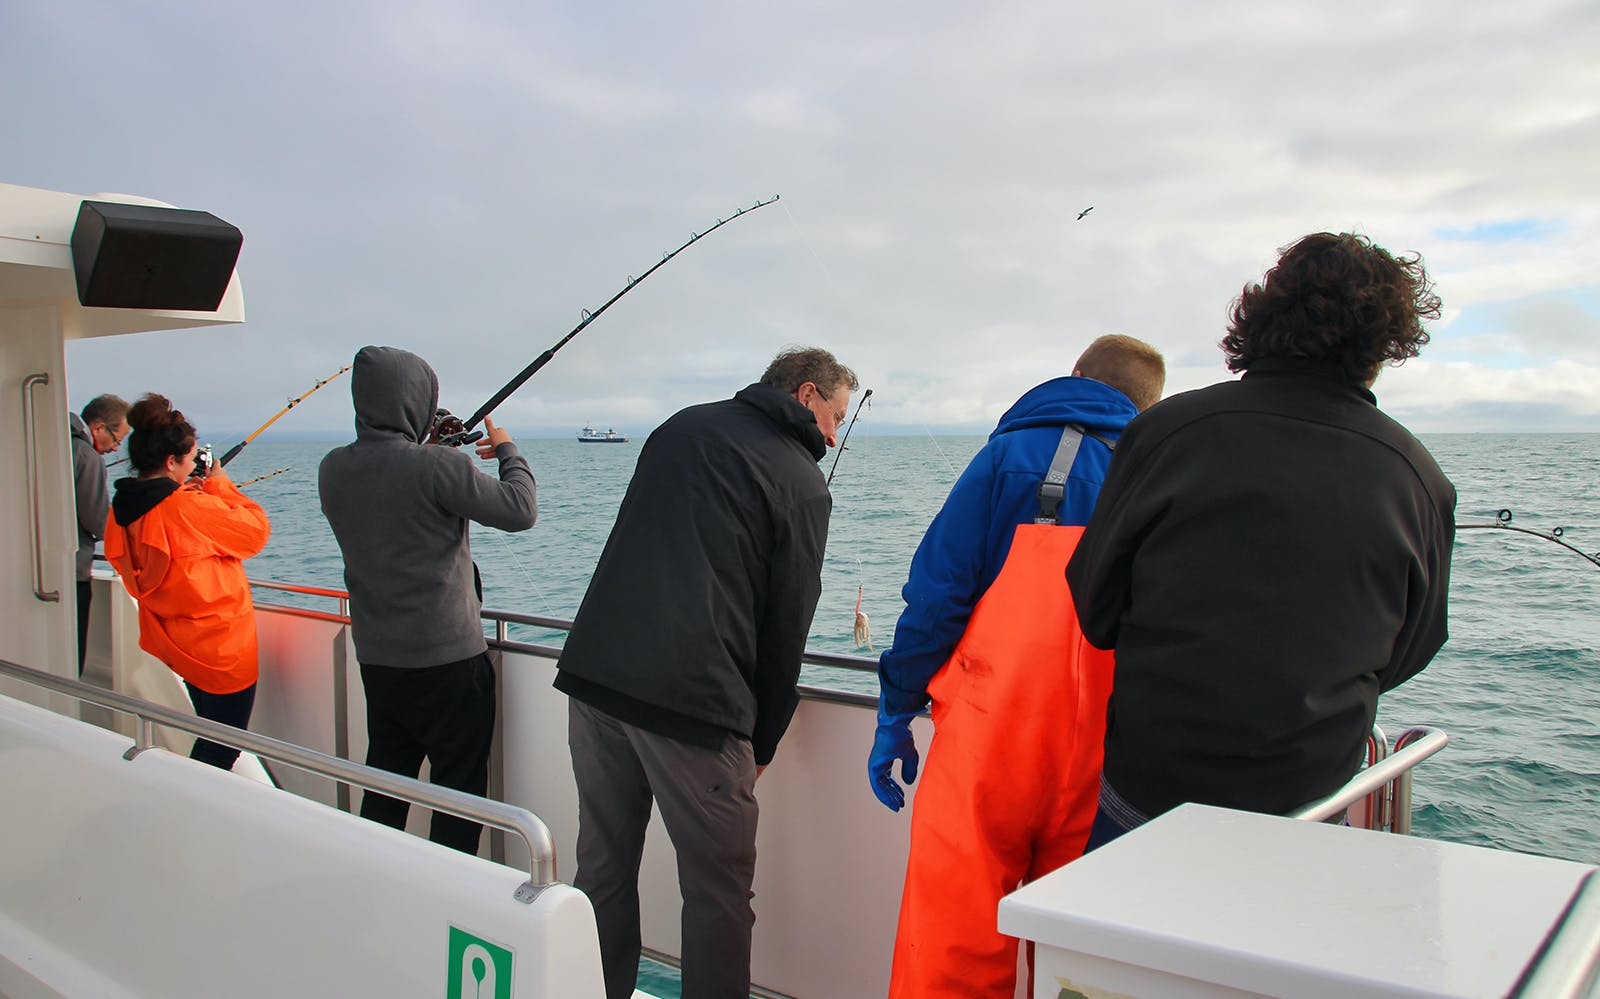 sea angling experience off the reykjavik coast-5